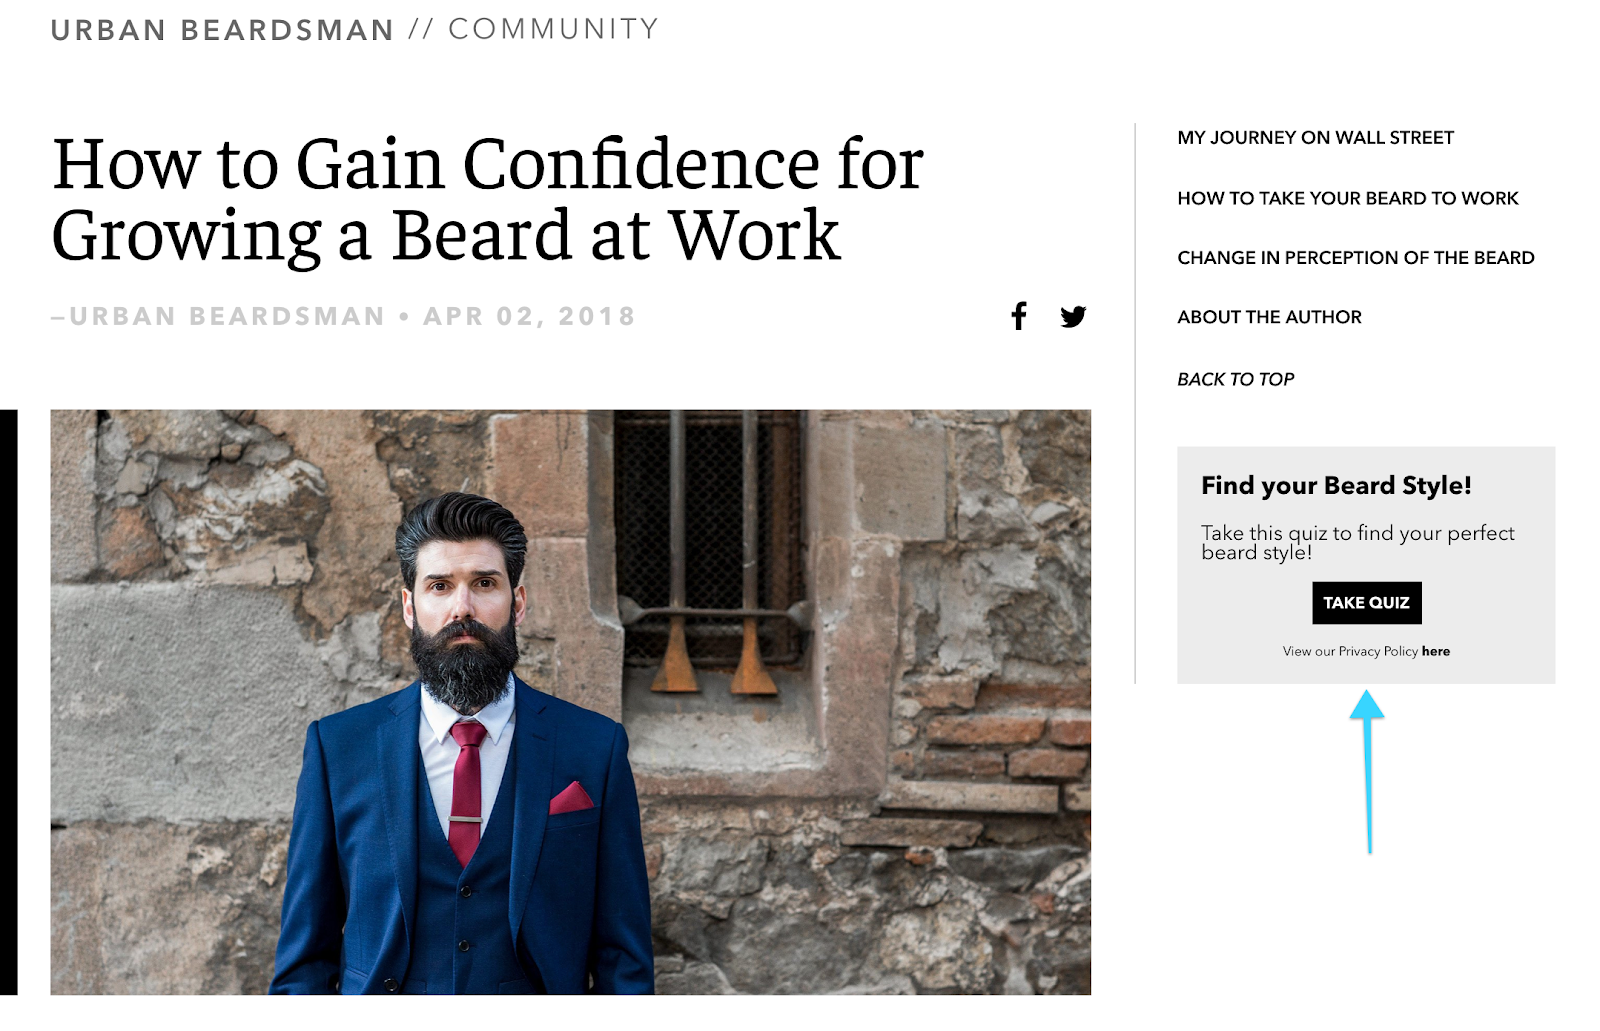 Sreenshot of interactive beard style quiz featured in the sidebar and remains in view — even when scrolling — for as long as the reader is on the blog